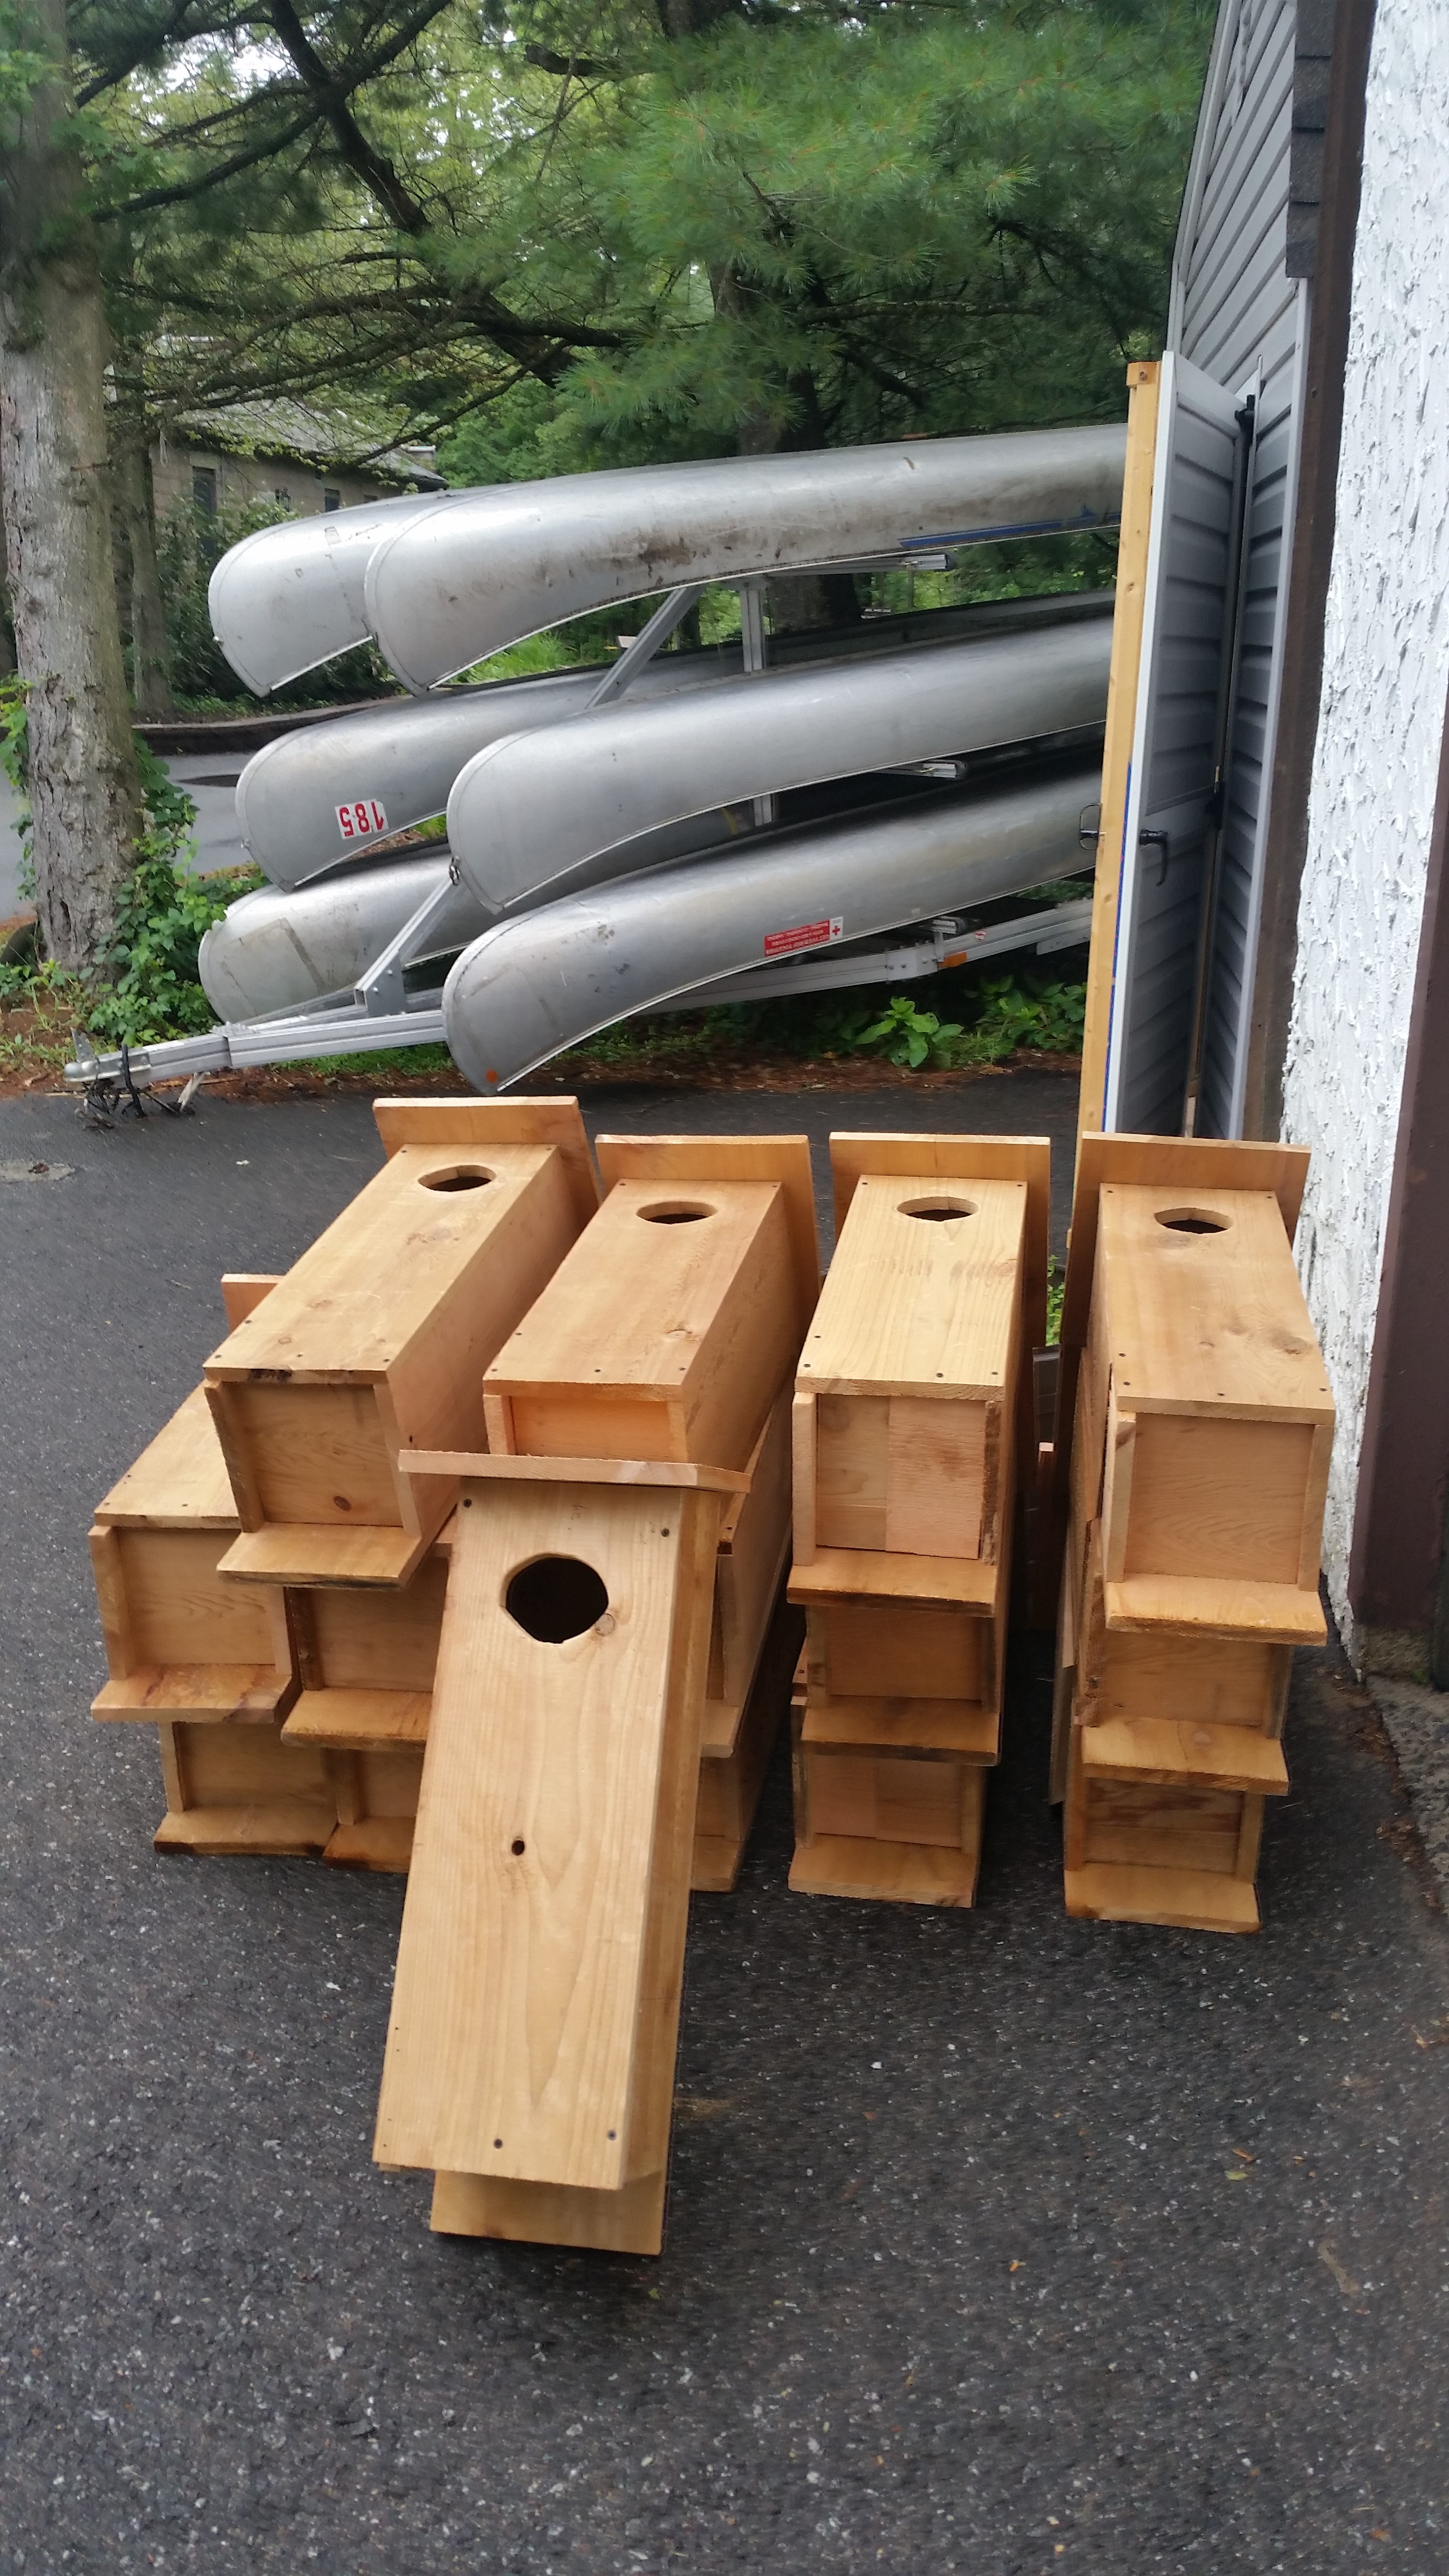 new river adirondack chairs heavy duty aluminum sports chair eagle scout projects in the parks – nature into action